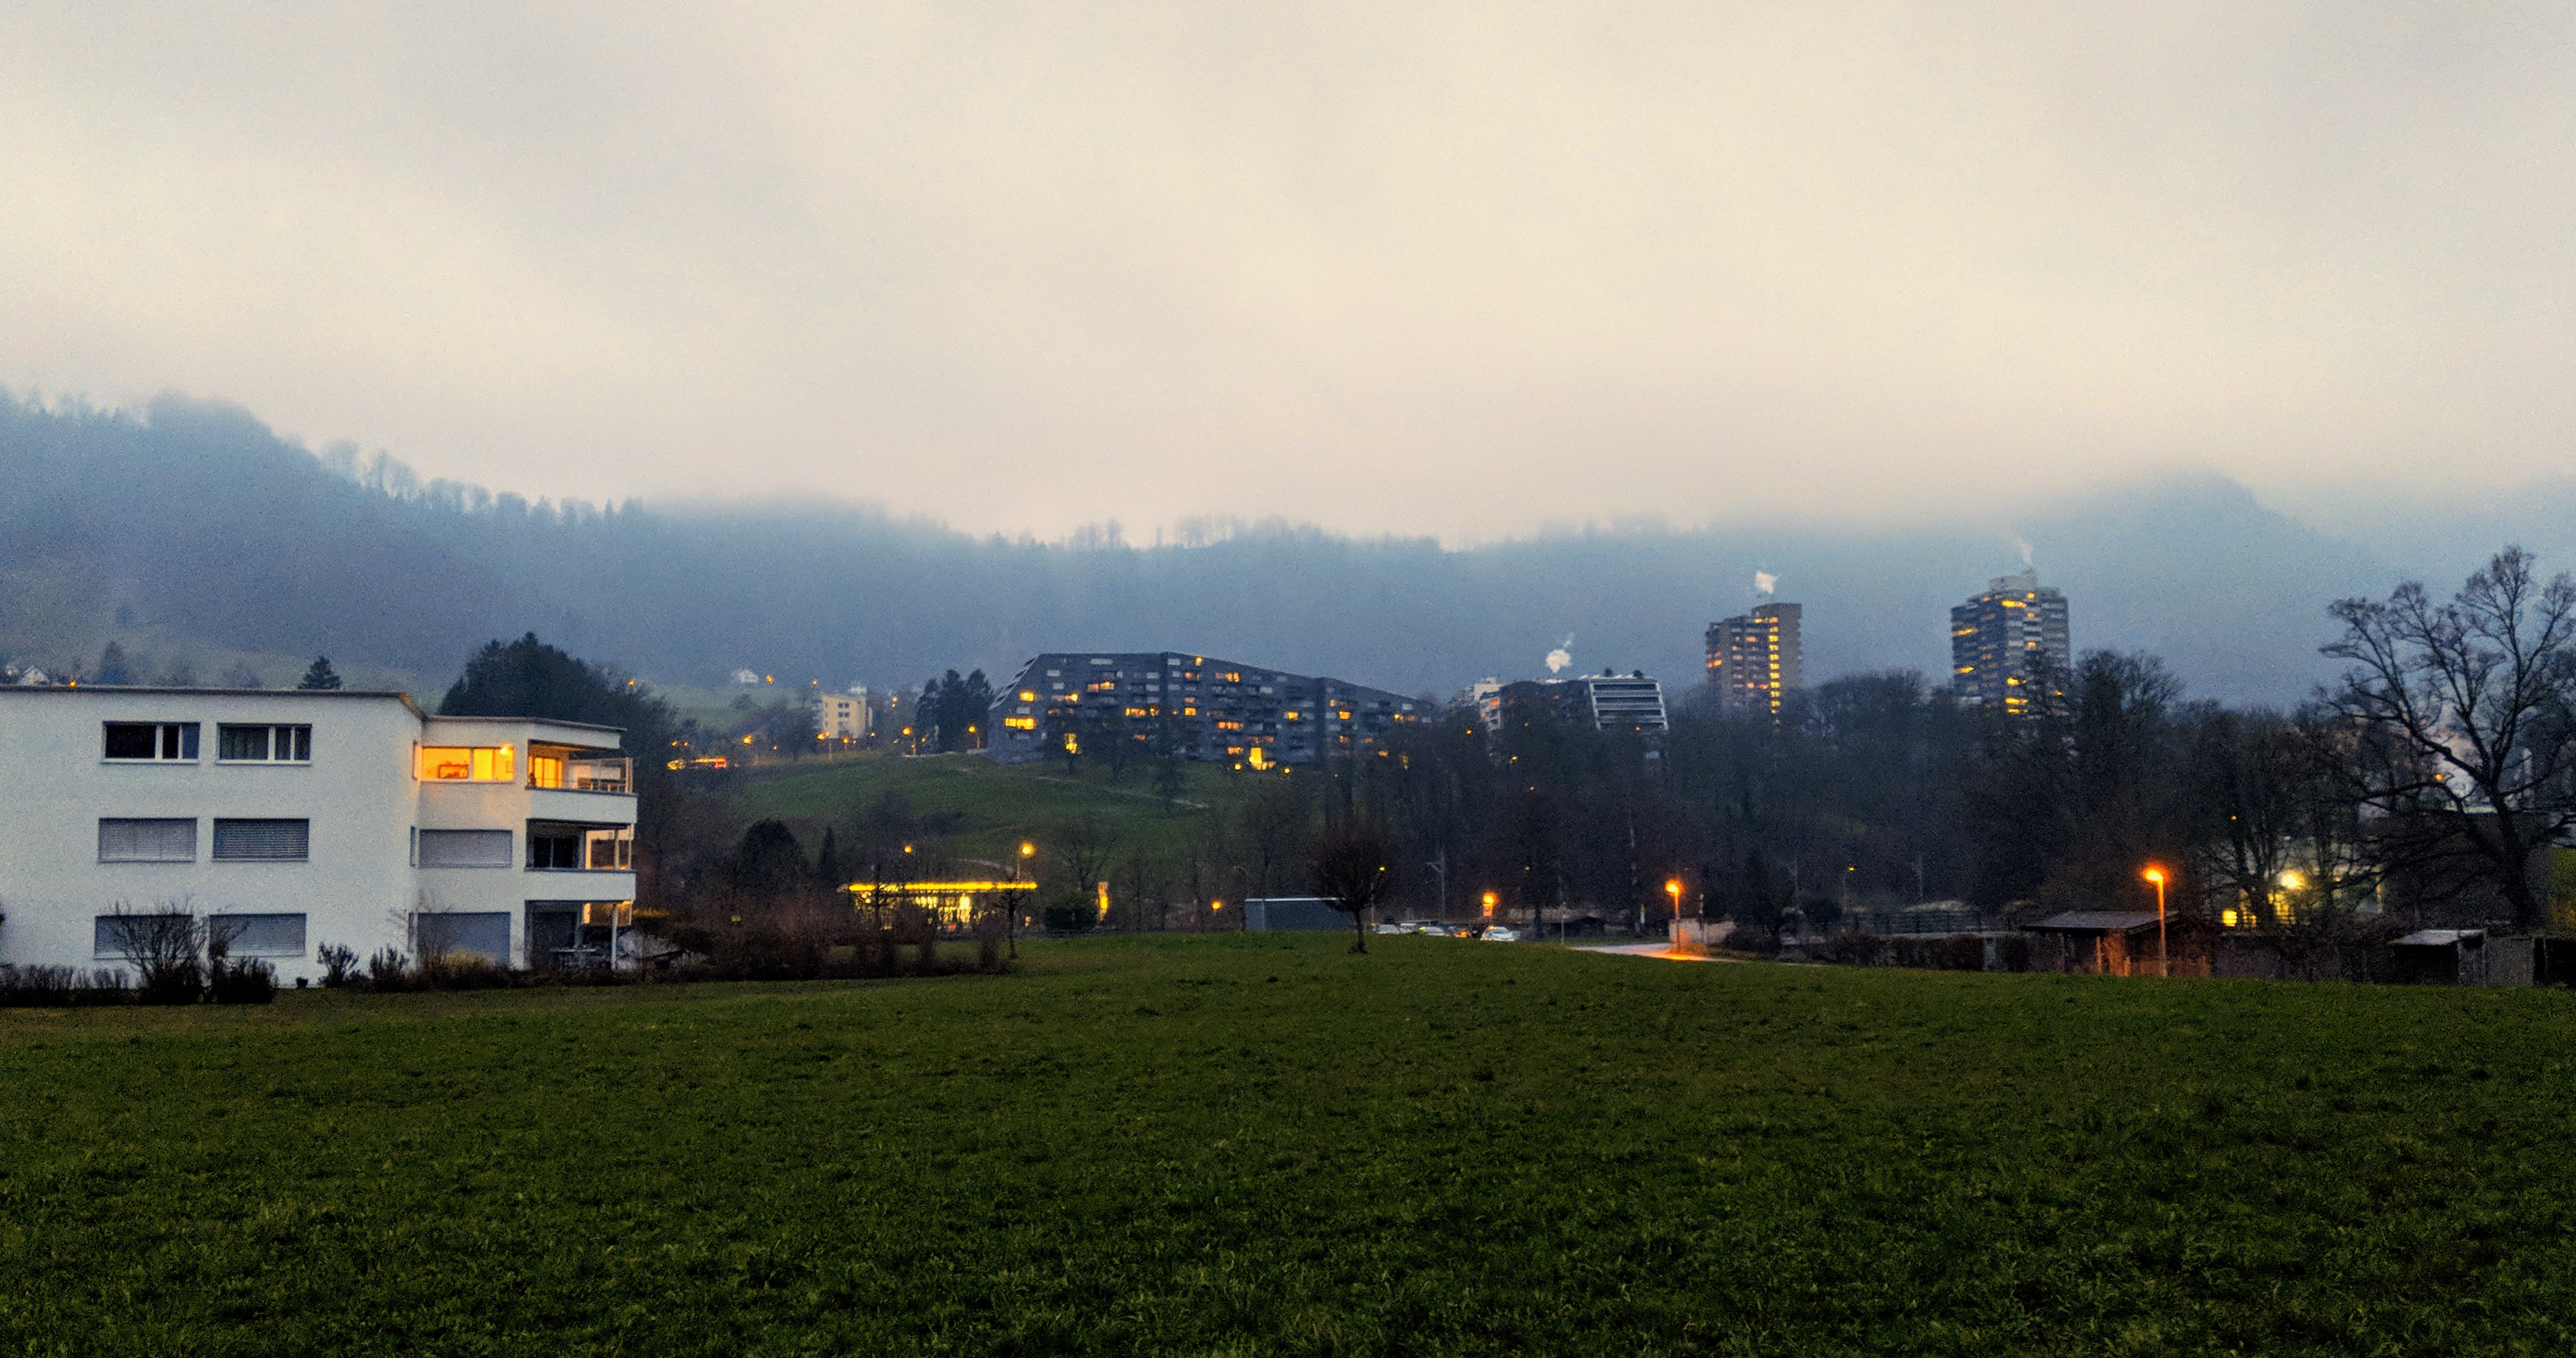 Running route in Zurich - Adliswil With Fog